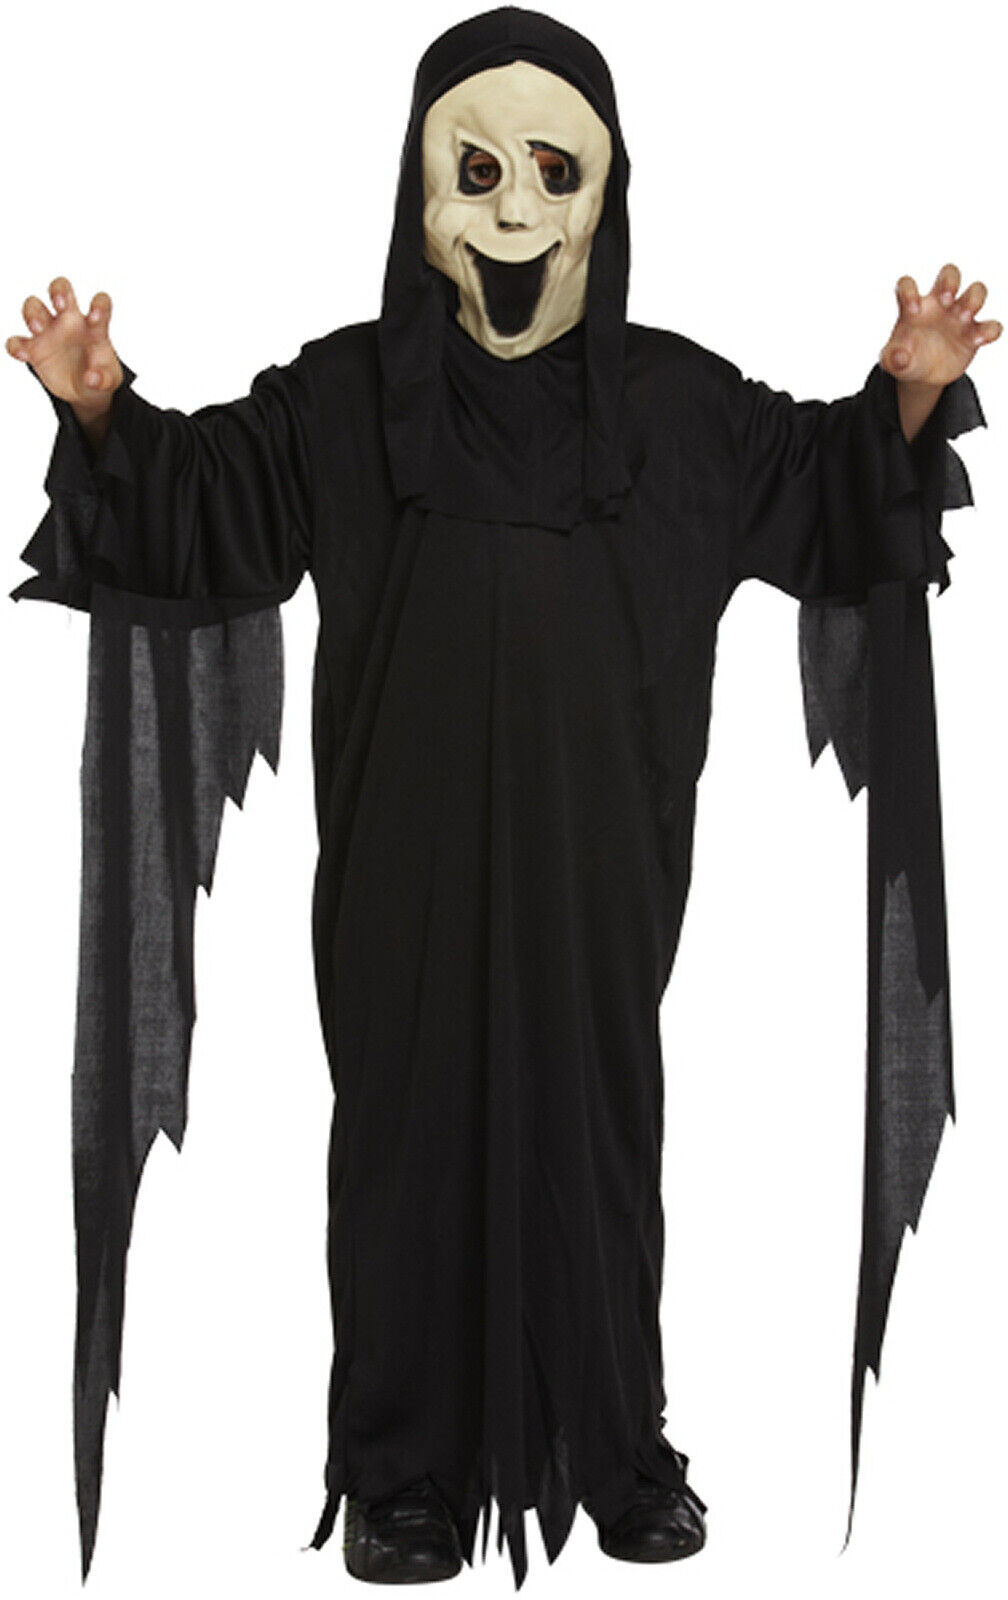 Boys Girls Kids Childs Scream Robe and Mask Halloween Fancy Dress Costume Outfit